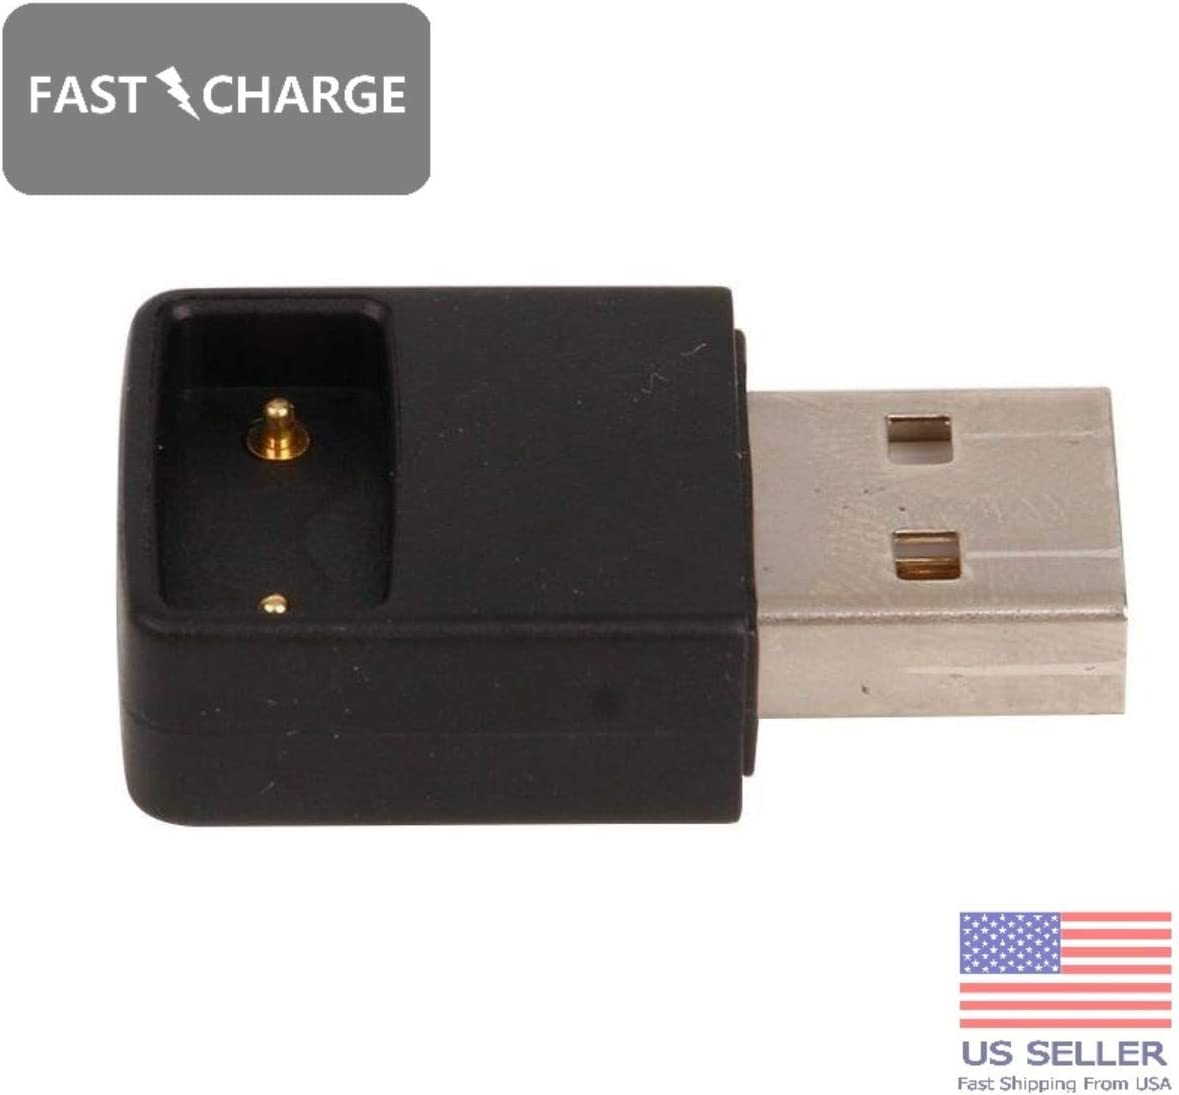 RapidCharge Magnetic USB Portable Charger Fast and Reliable 2-Pack